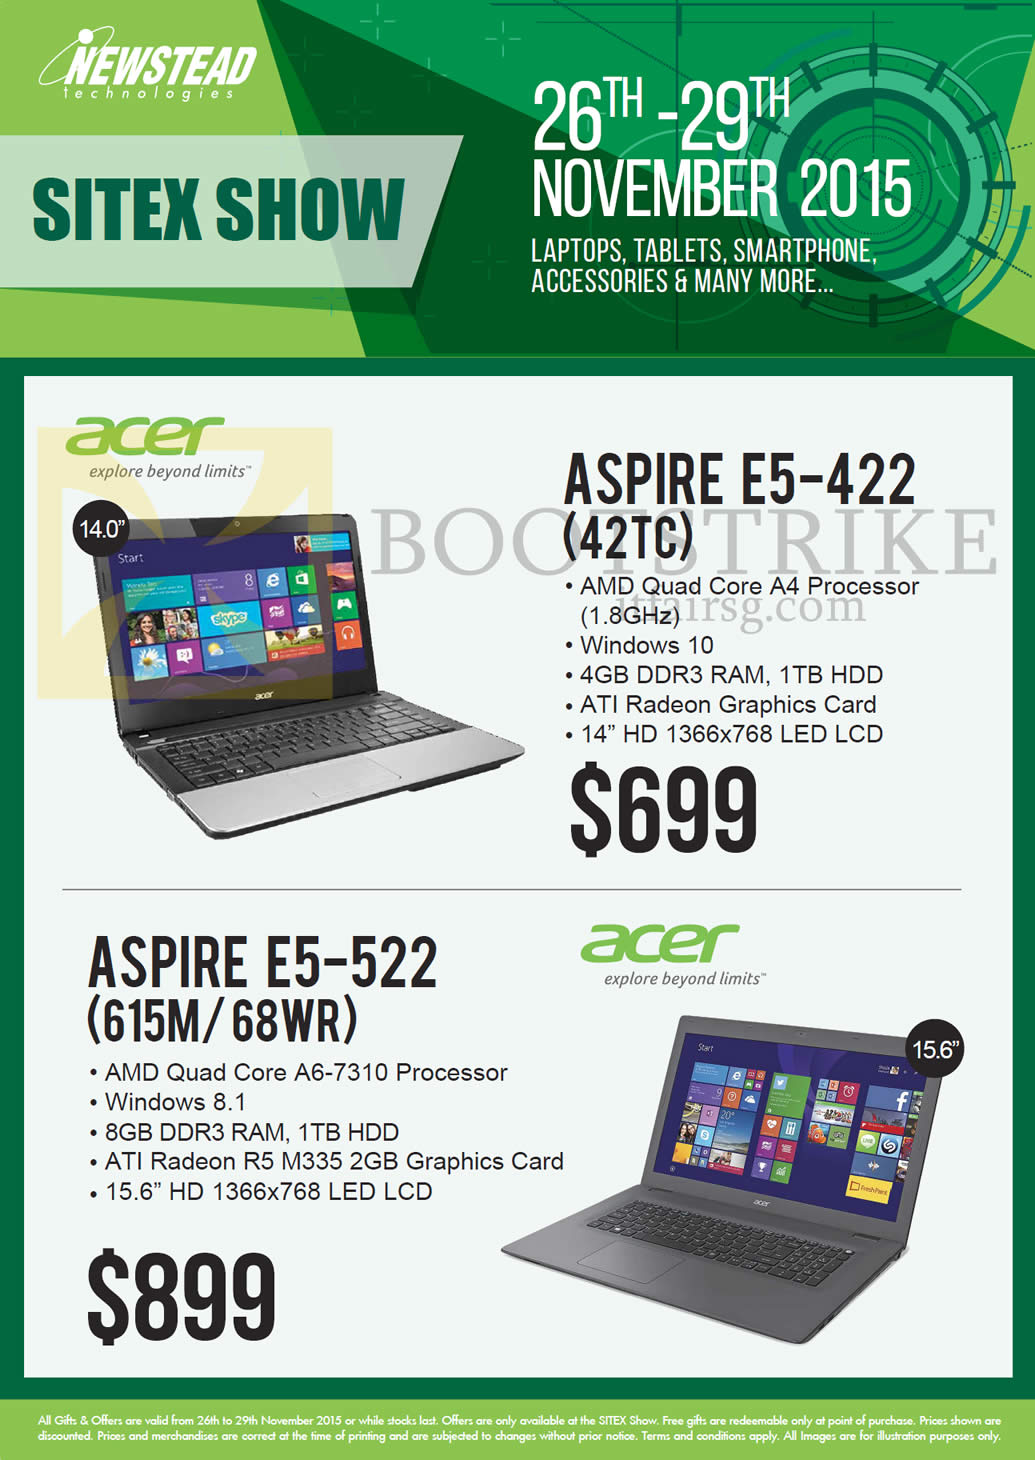 SITEX 2015 price list image brochure of Acer Newstead Notebooks Aspire, E5-422 (42TC), E5-522 (615M 68WR)